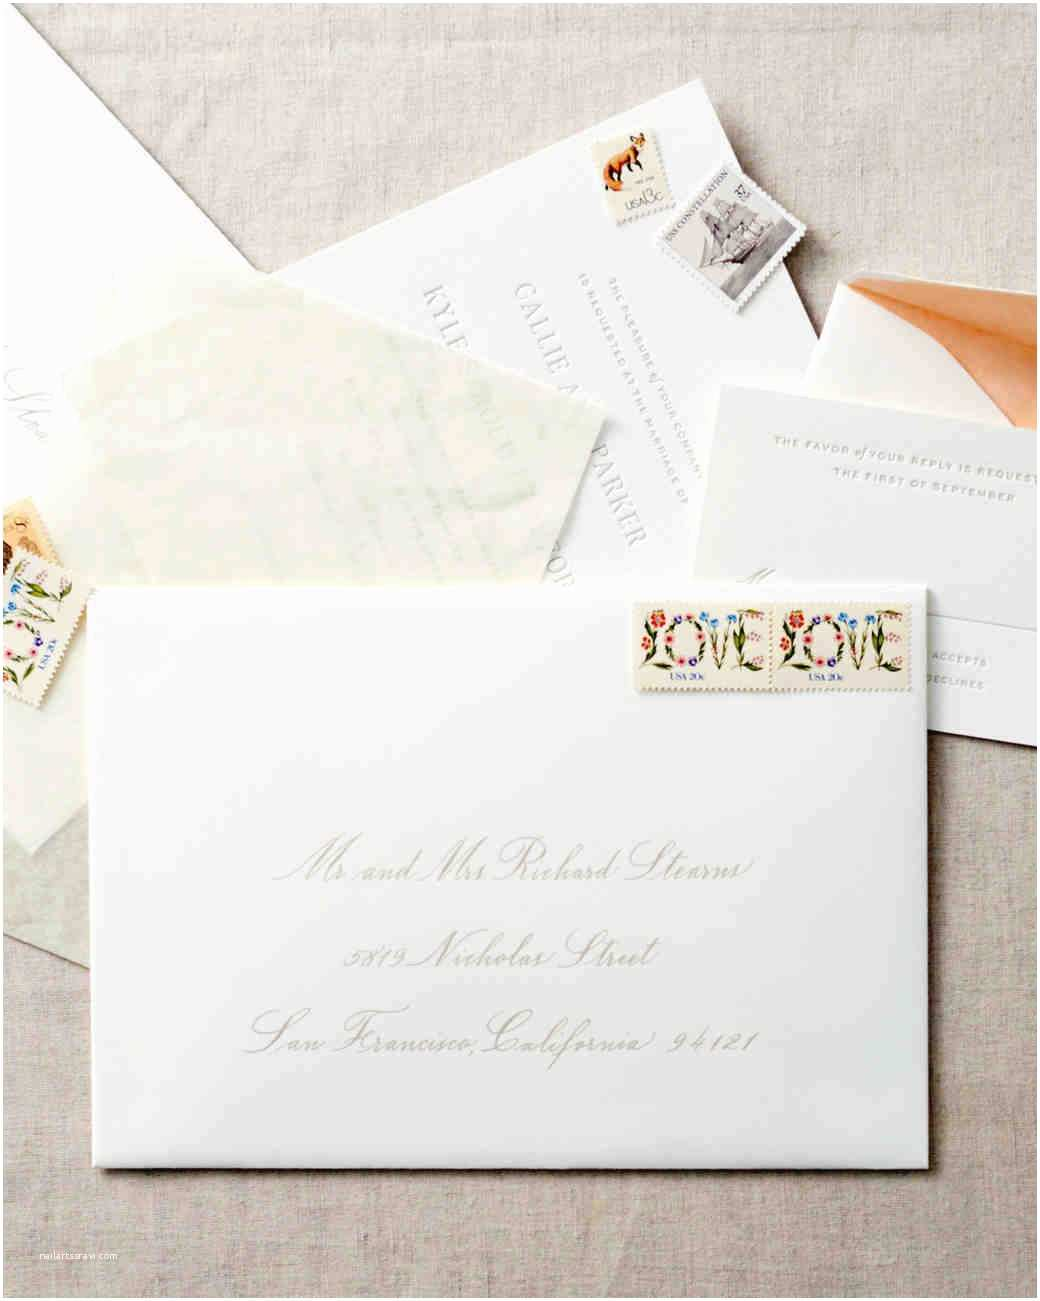 Guest Address Labels for Wedding Invitations How to Address Guests On Wedding Invitation Envelopes